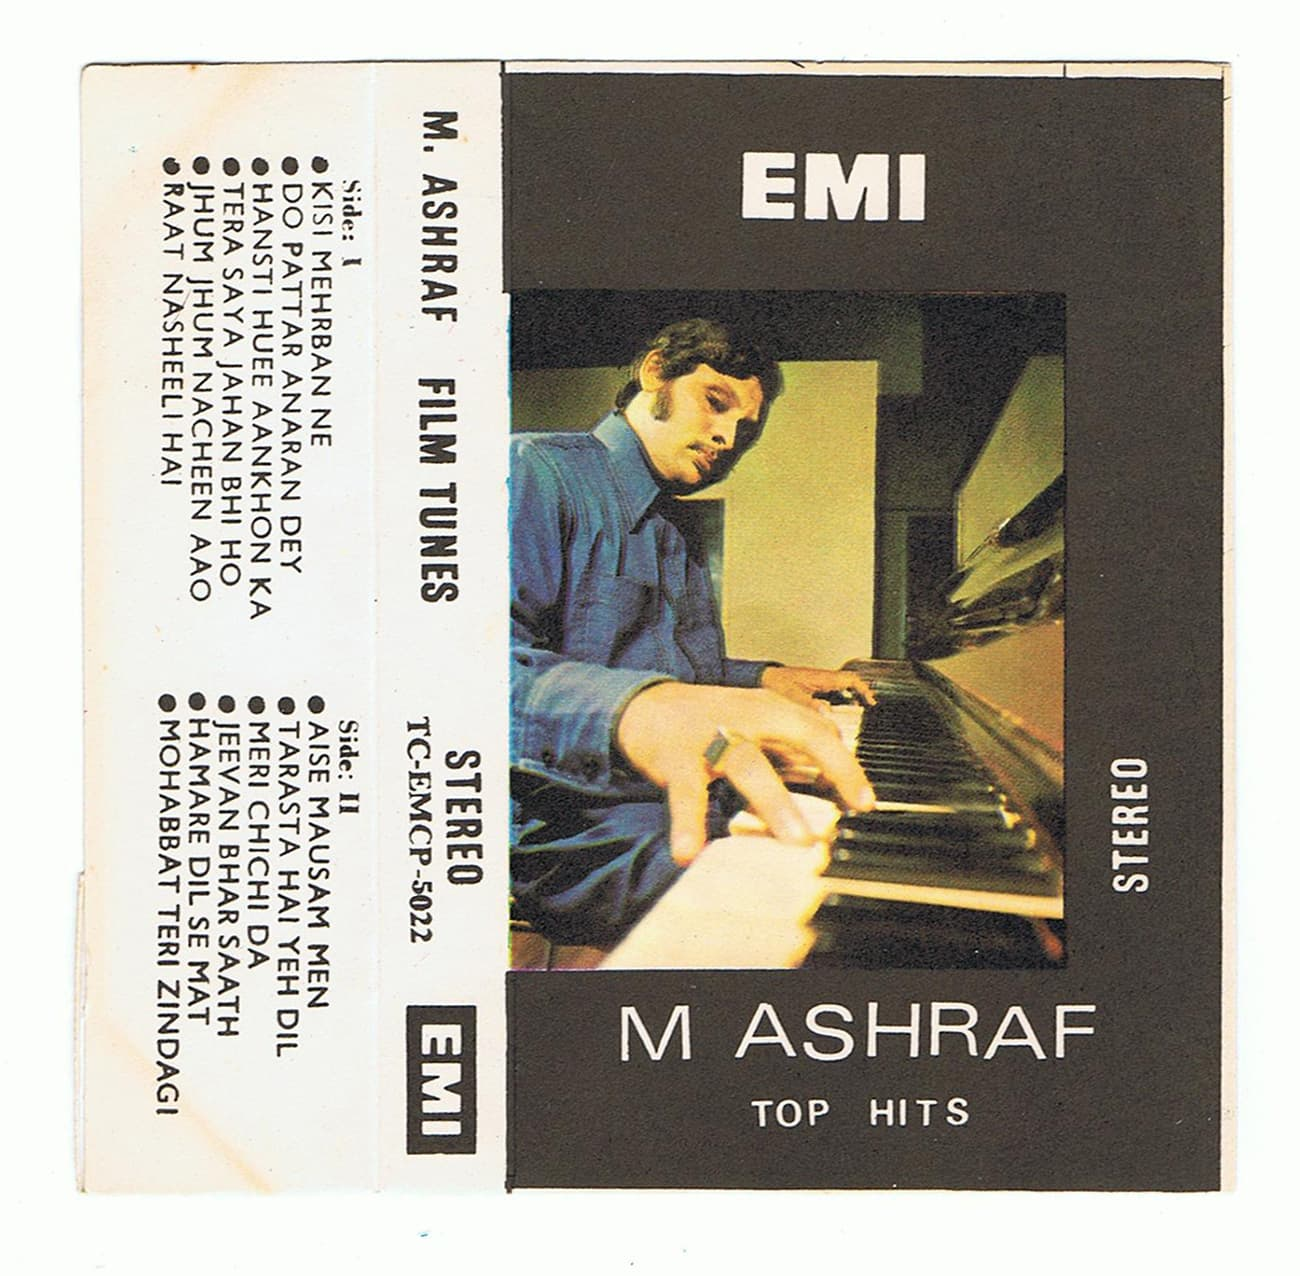 M Ashraf's top hits